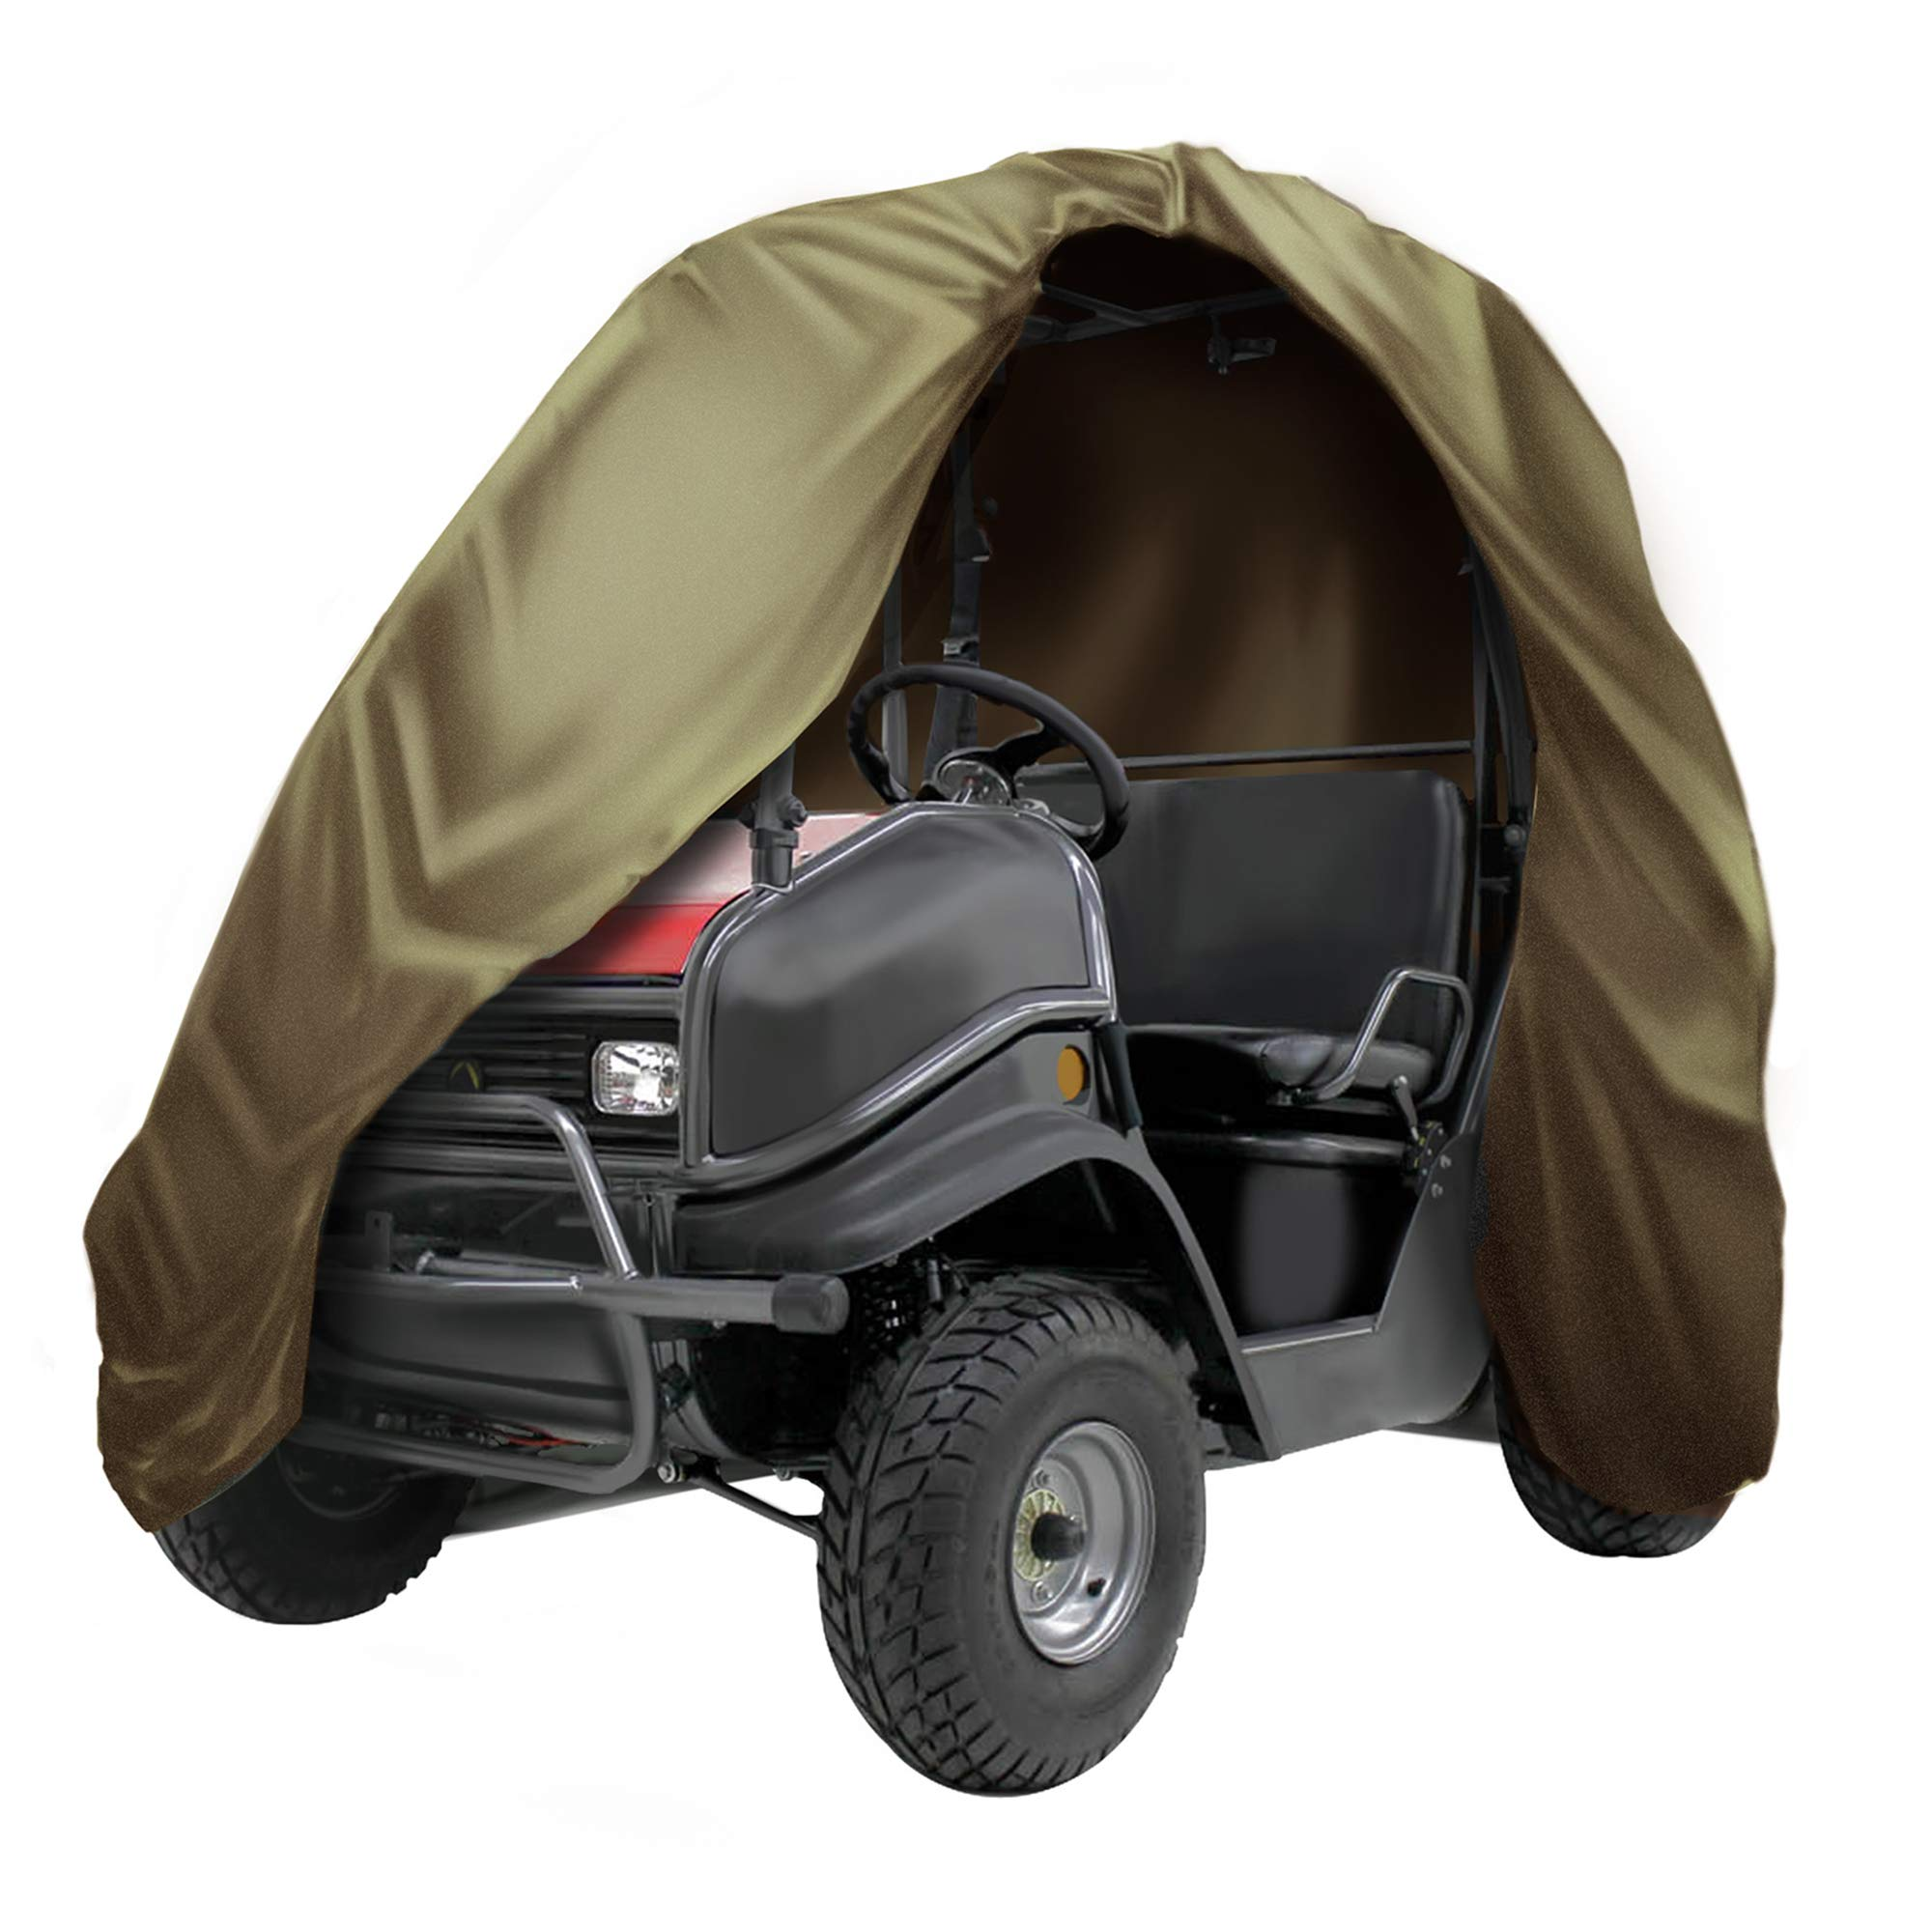 """NEXTCOVER UTV Cover-Heavy Duty Waterproof, Double P.U Coated 300D Denier,Fits UTVS up to L130""""W60""""H76"""",Olive Drab Color,NUTV21814-GN"""